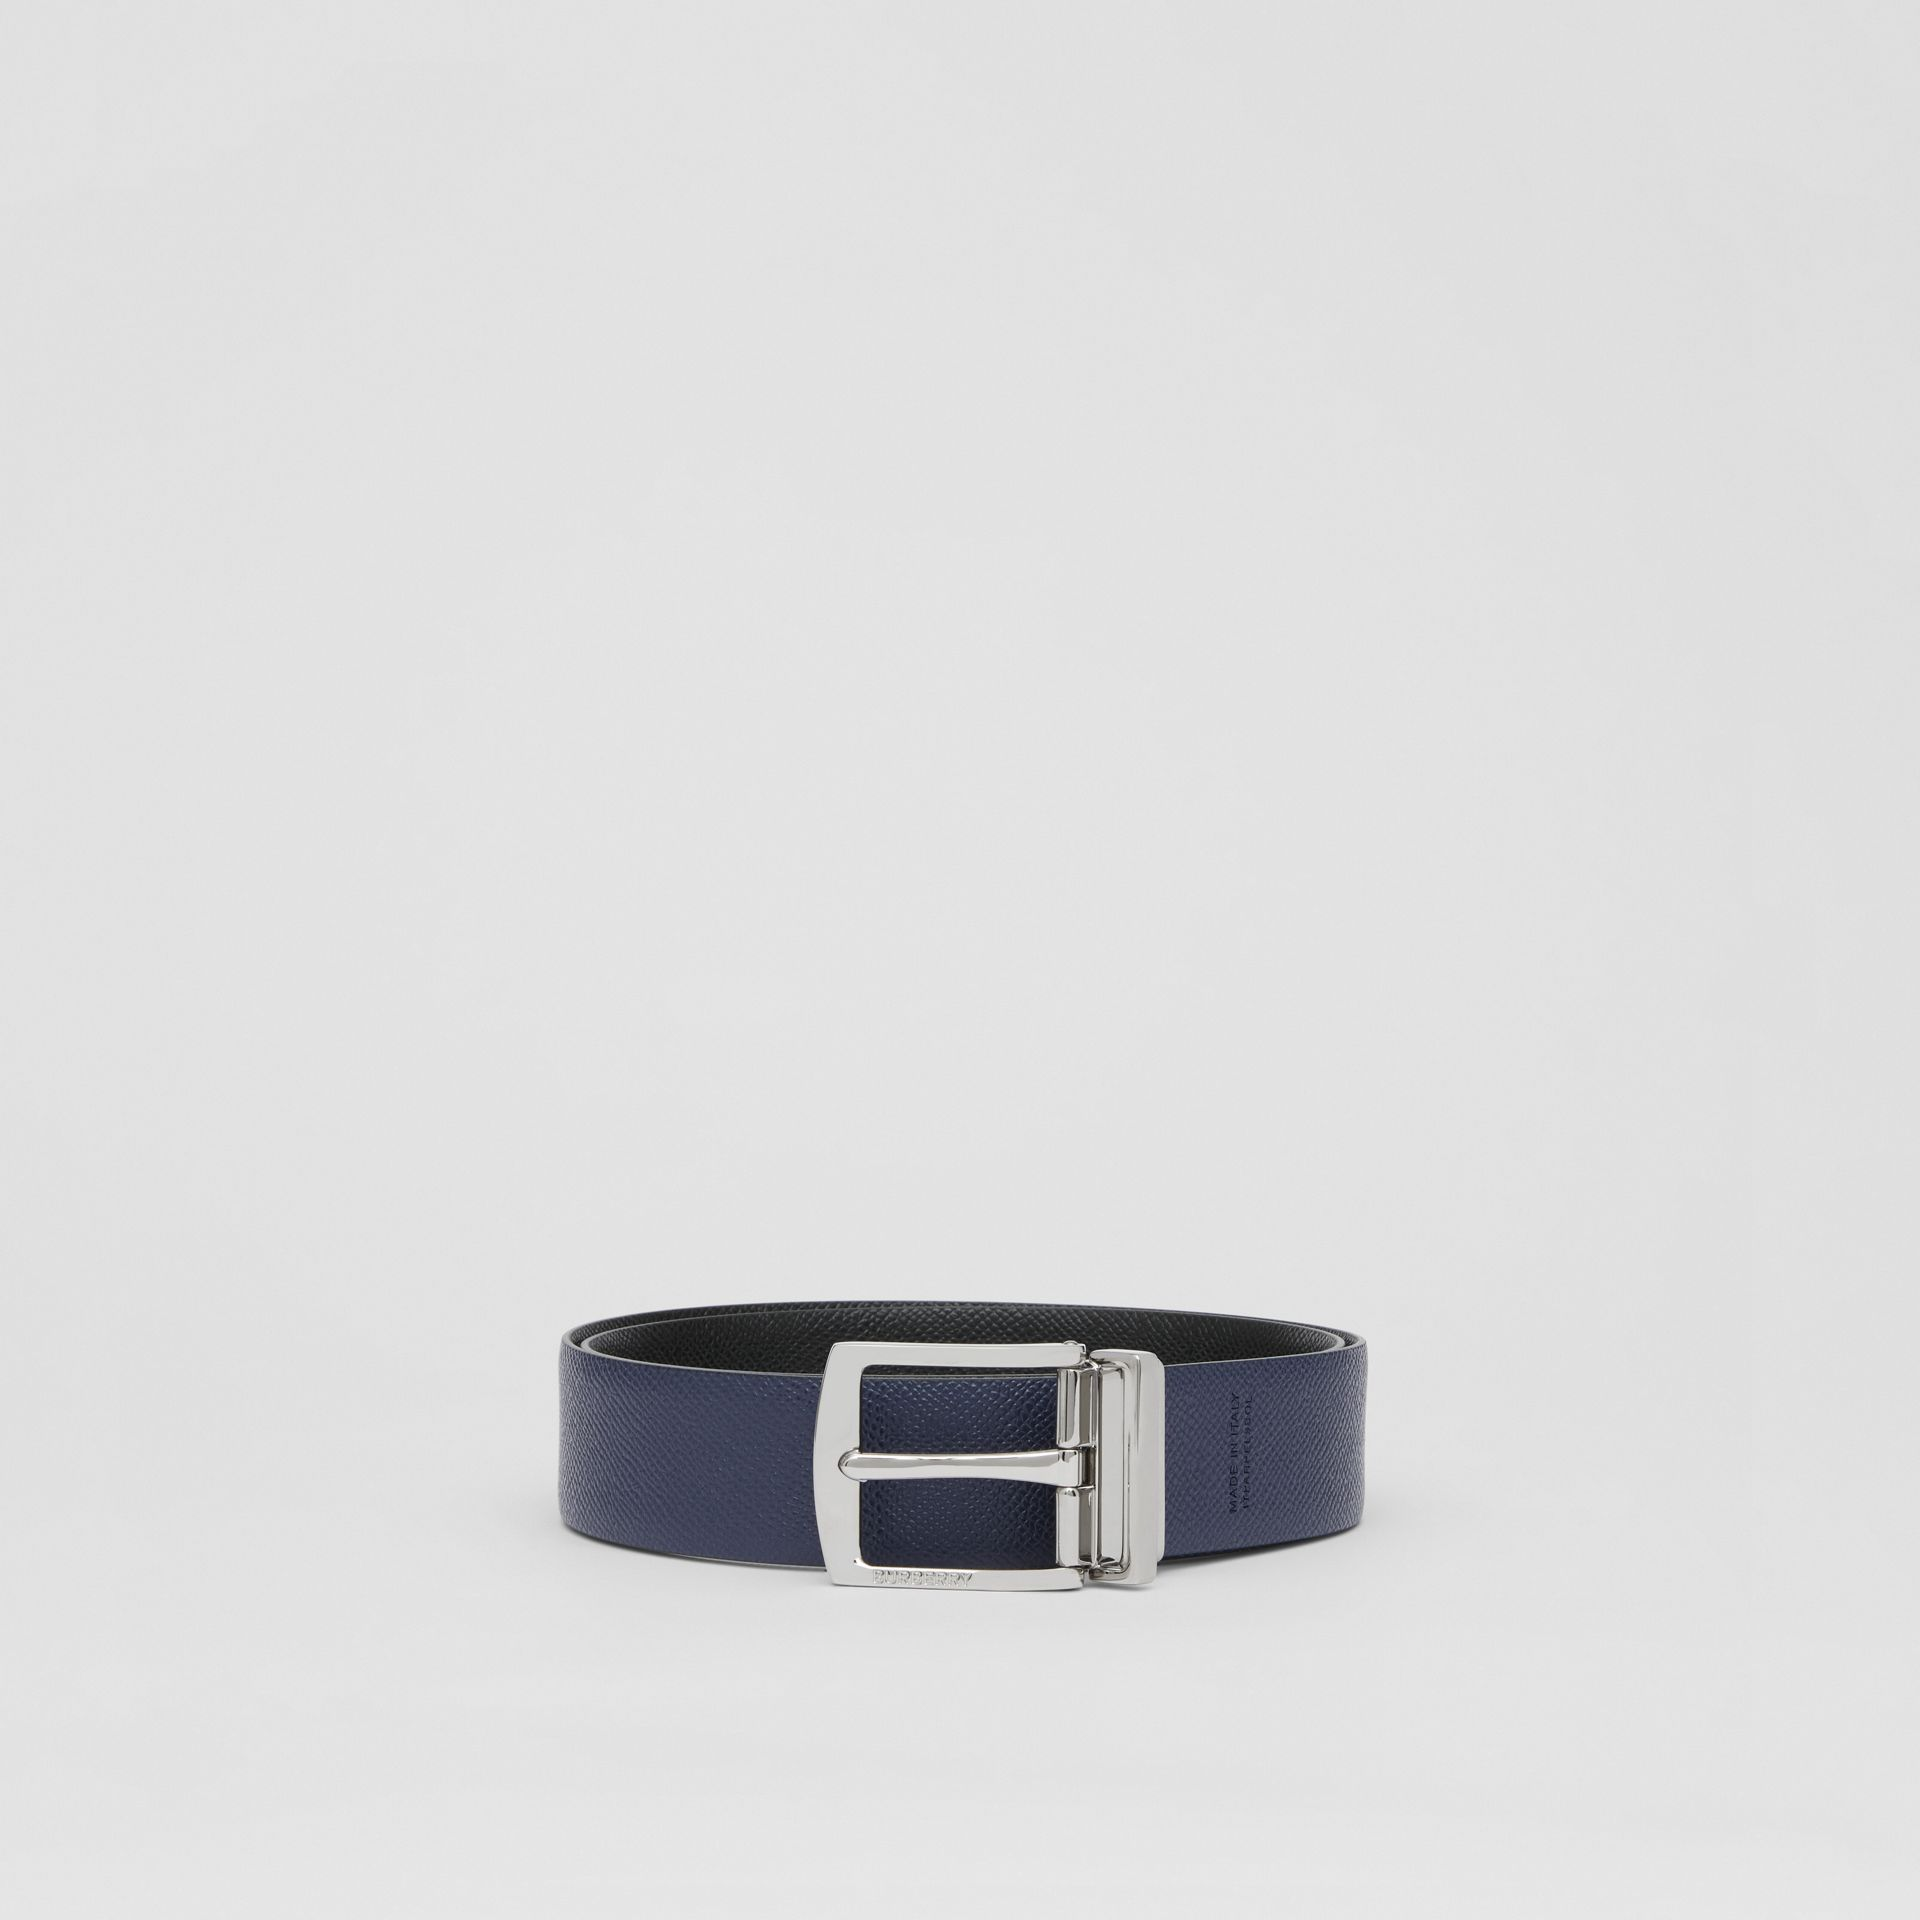 Reversible Grainy Leather Belt in Black/navy - Men | Burberry Hong Kong S.A.R - gallery image 5